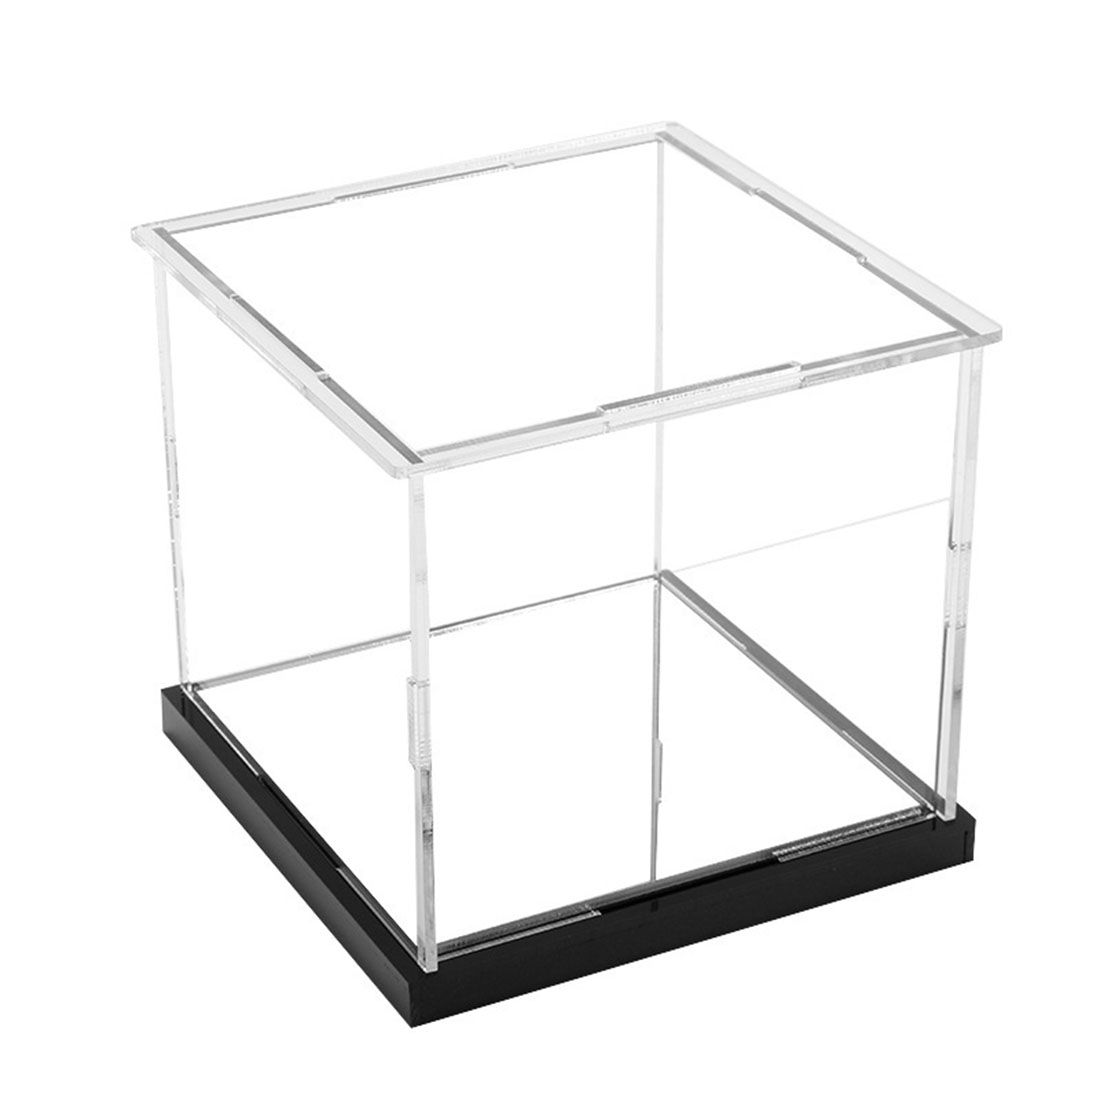 10 X 10 X 12cm Acrylic Dustproof Box Display Box With Mirror Base/Or No For Funko Pop - Transparent